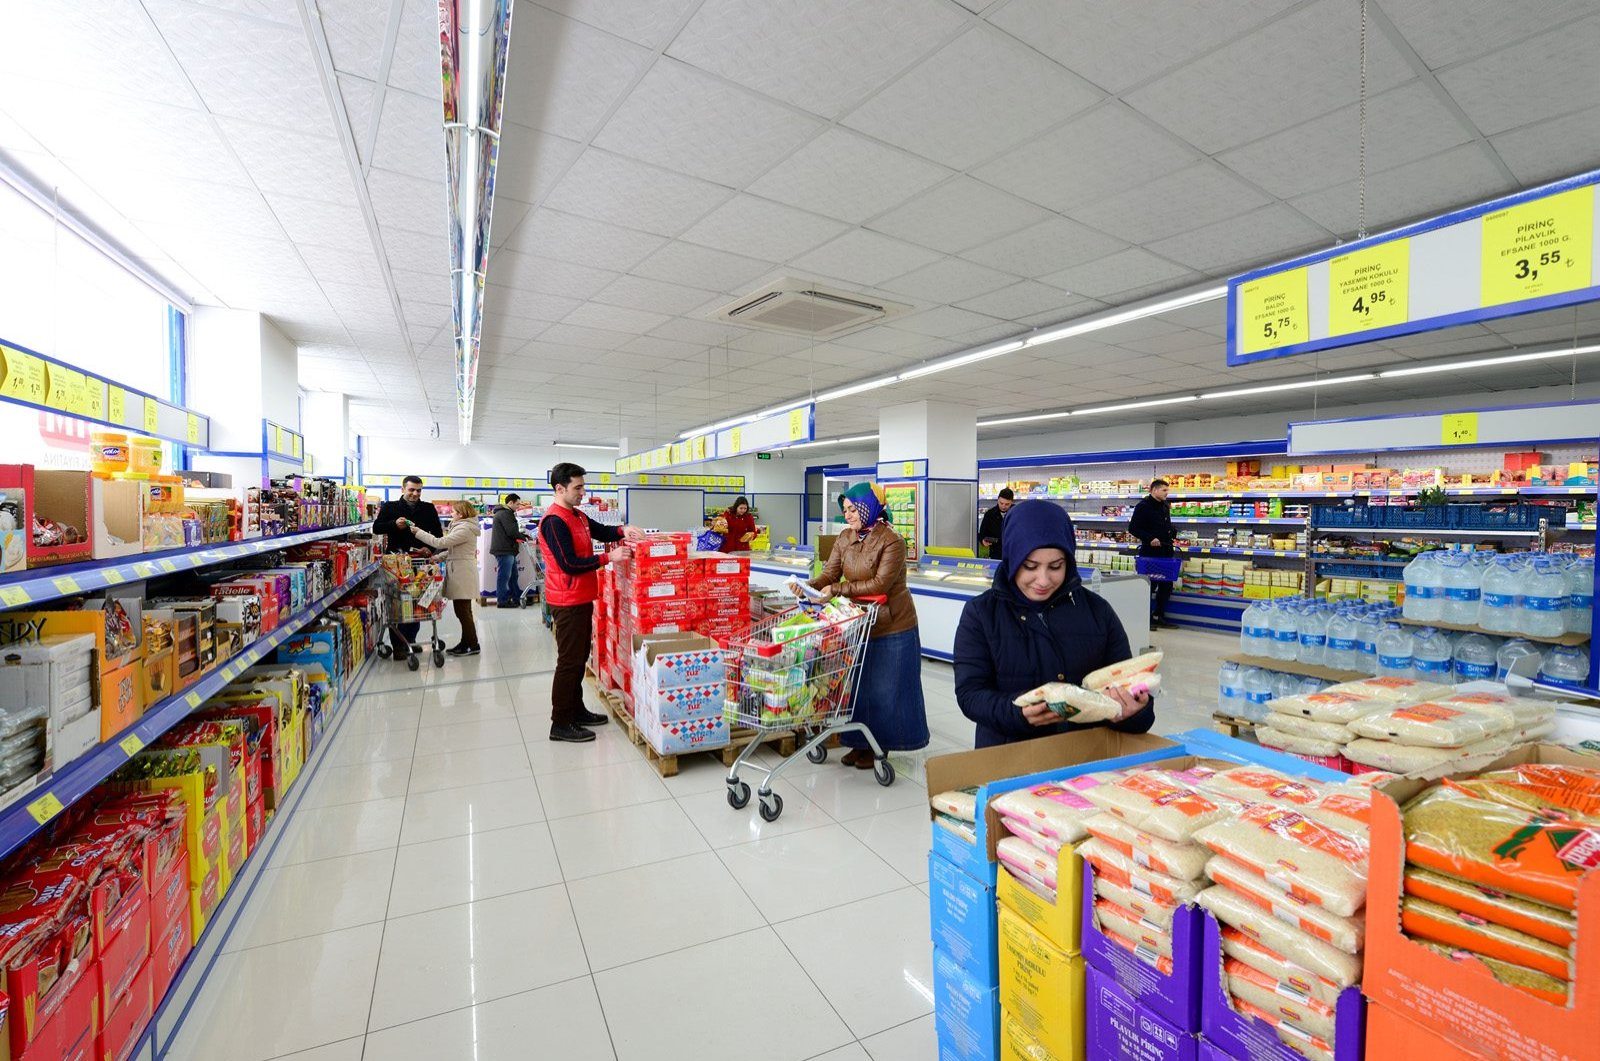 Customers seen while doing shopping at one of the branches of Turkey's largest retailer BİM, Nov. 1, 2019.